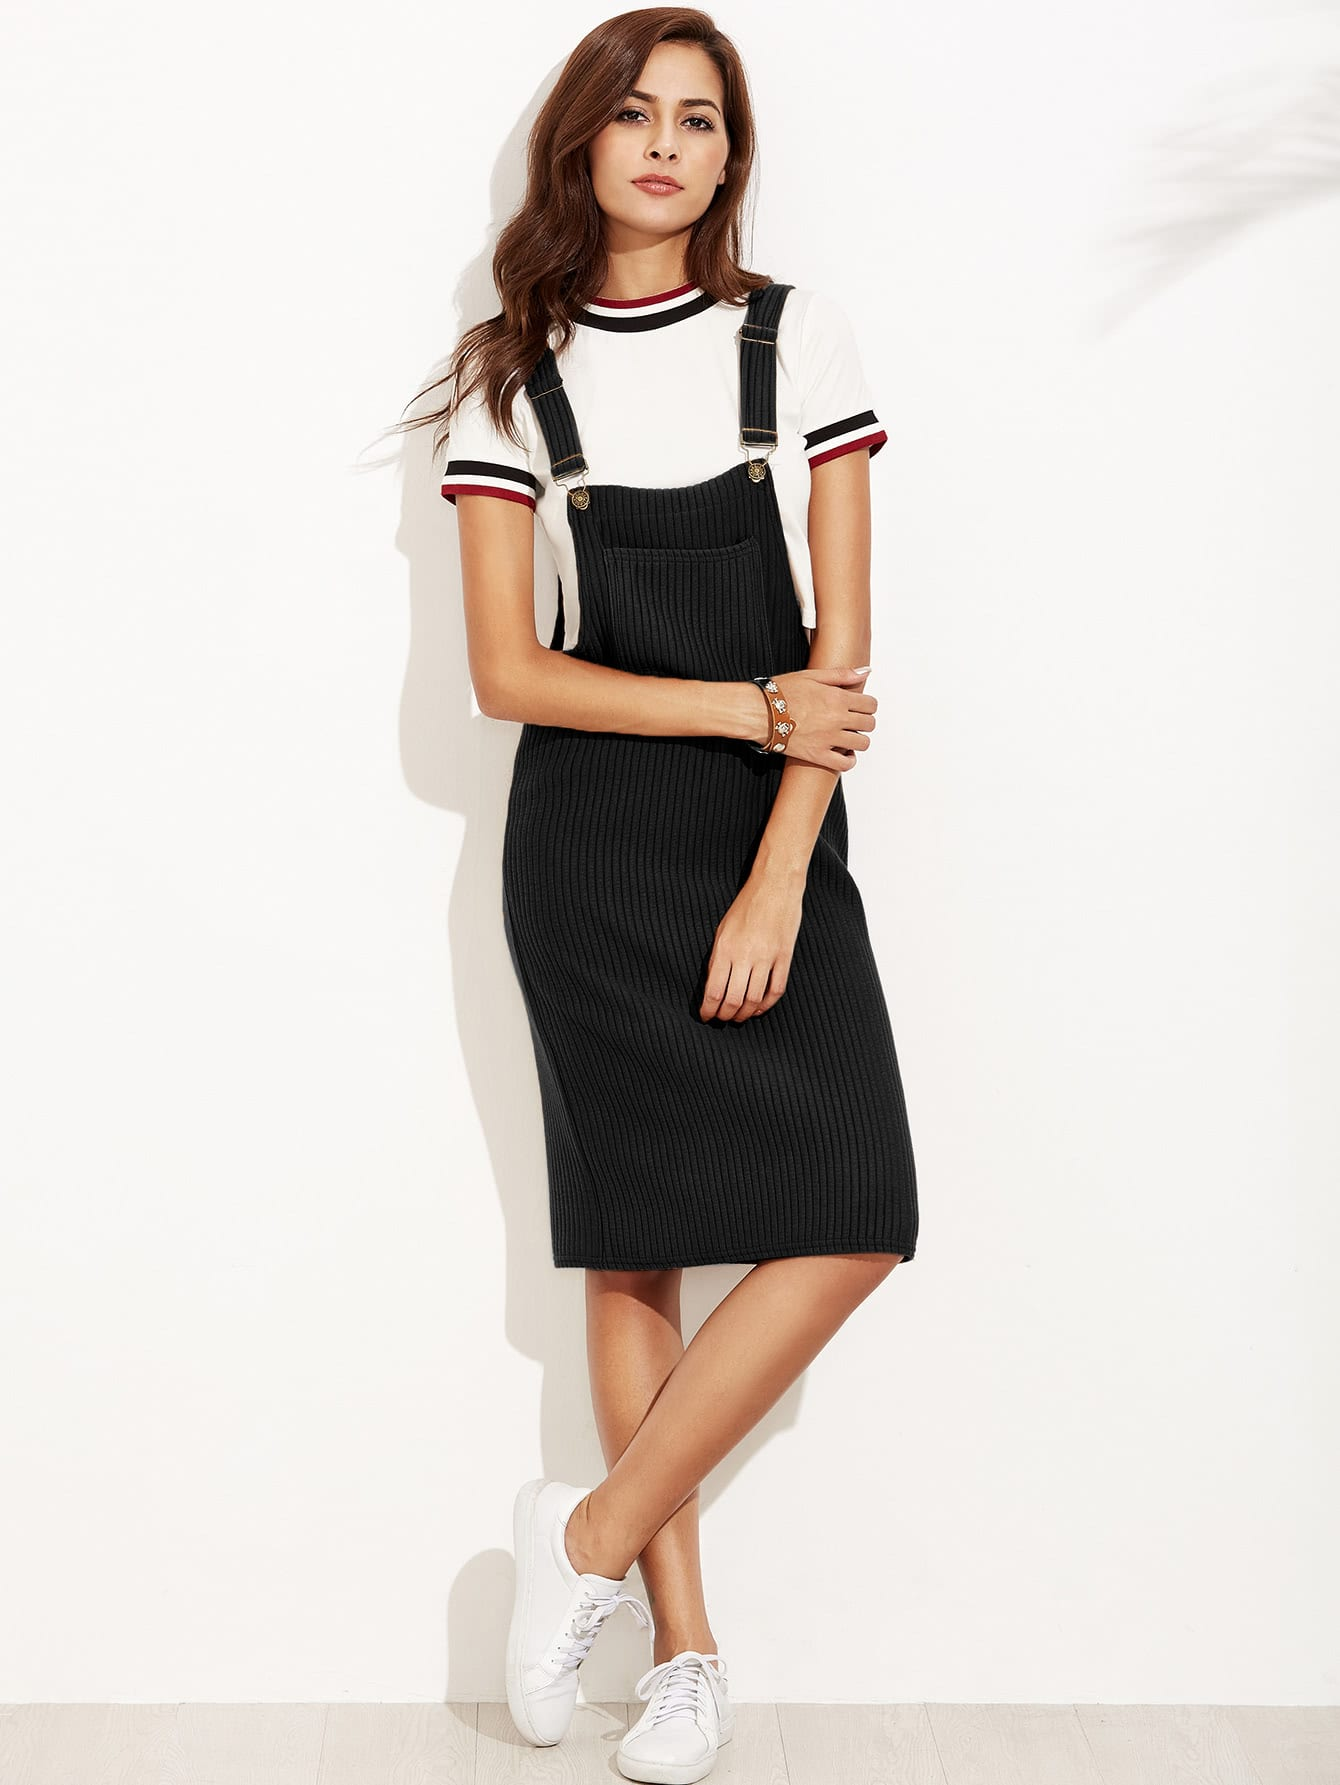 Black Ribbed Overall Dress With Pocket dress160906121